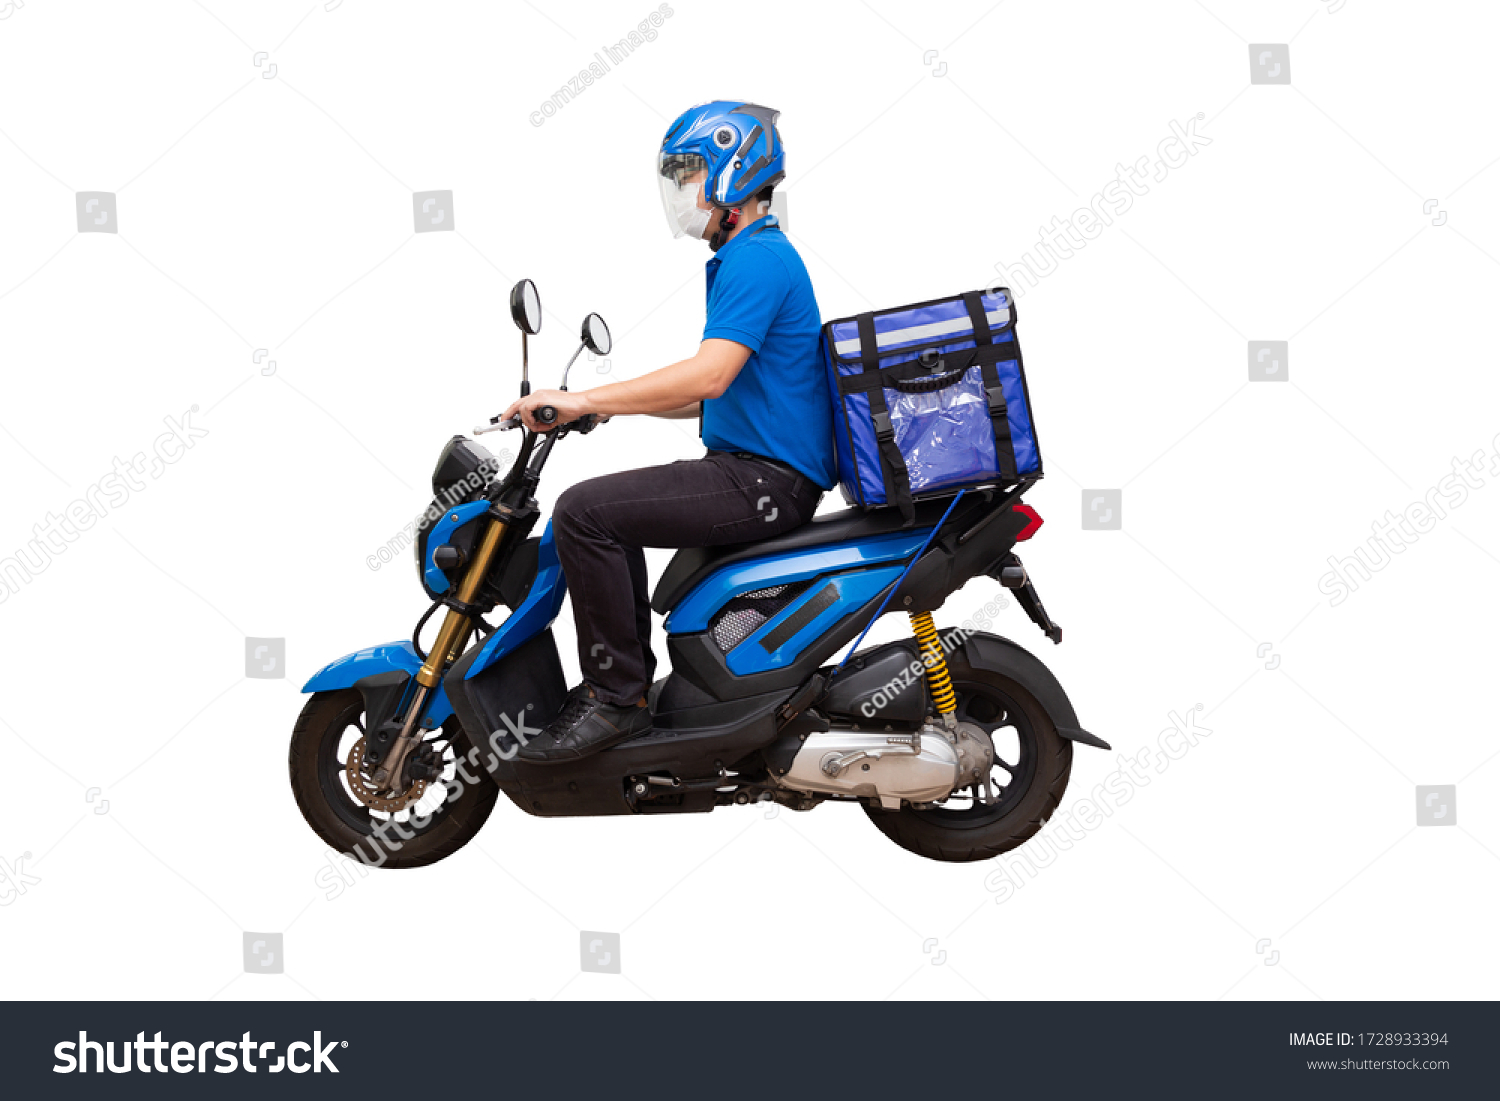 Delivery man wearing blue uniform riding motorcycle and delivery box. Motorbike delivering food or parcel express service isolated on white background #1728933394